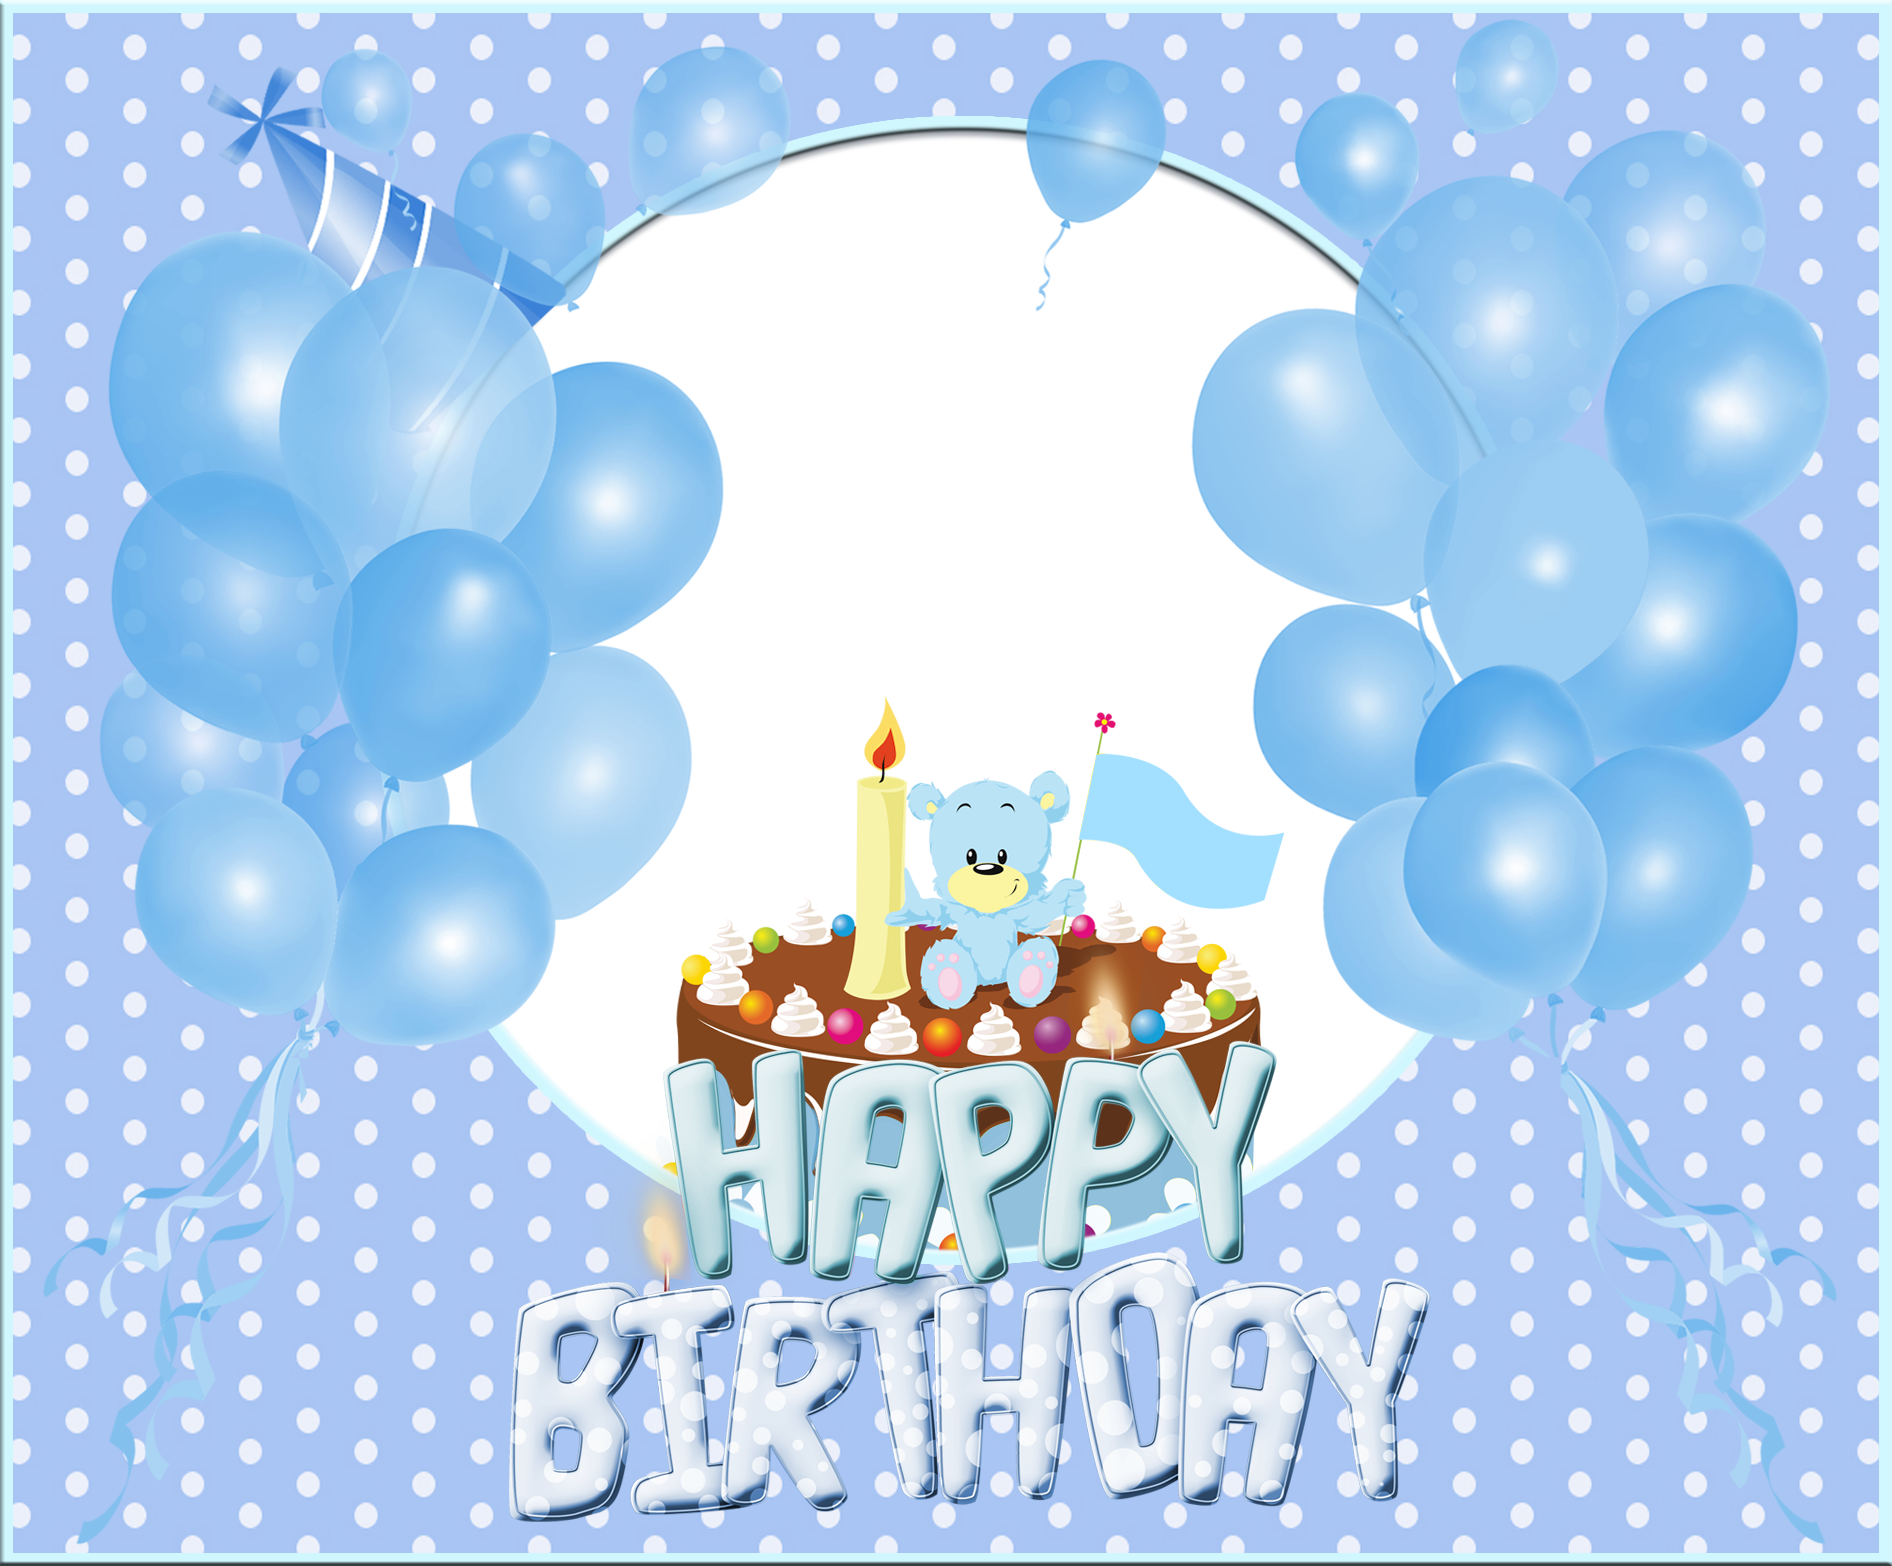 Streamers clipart birthday accessory. Transparent happy blue frame